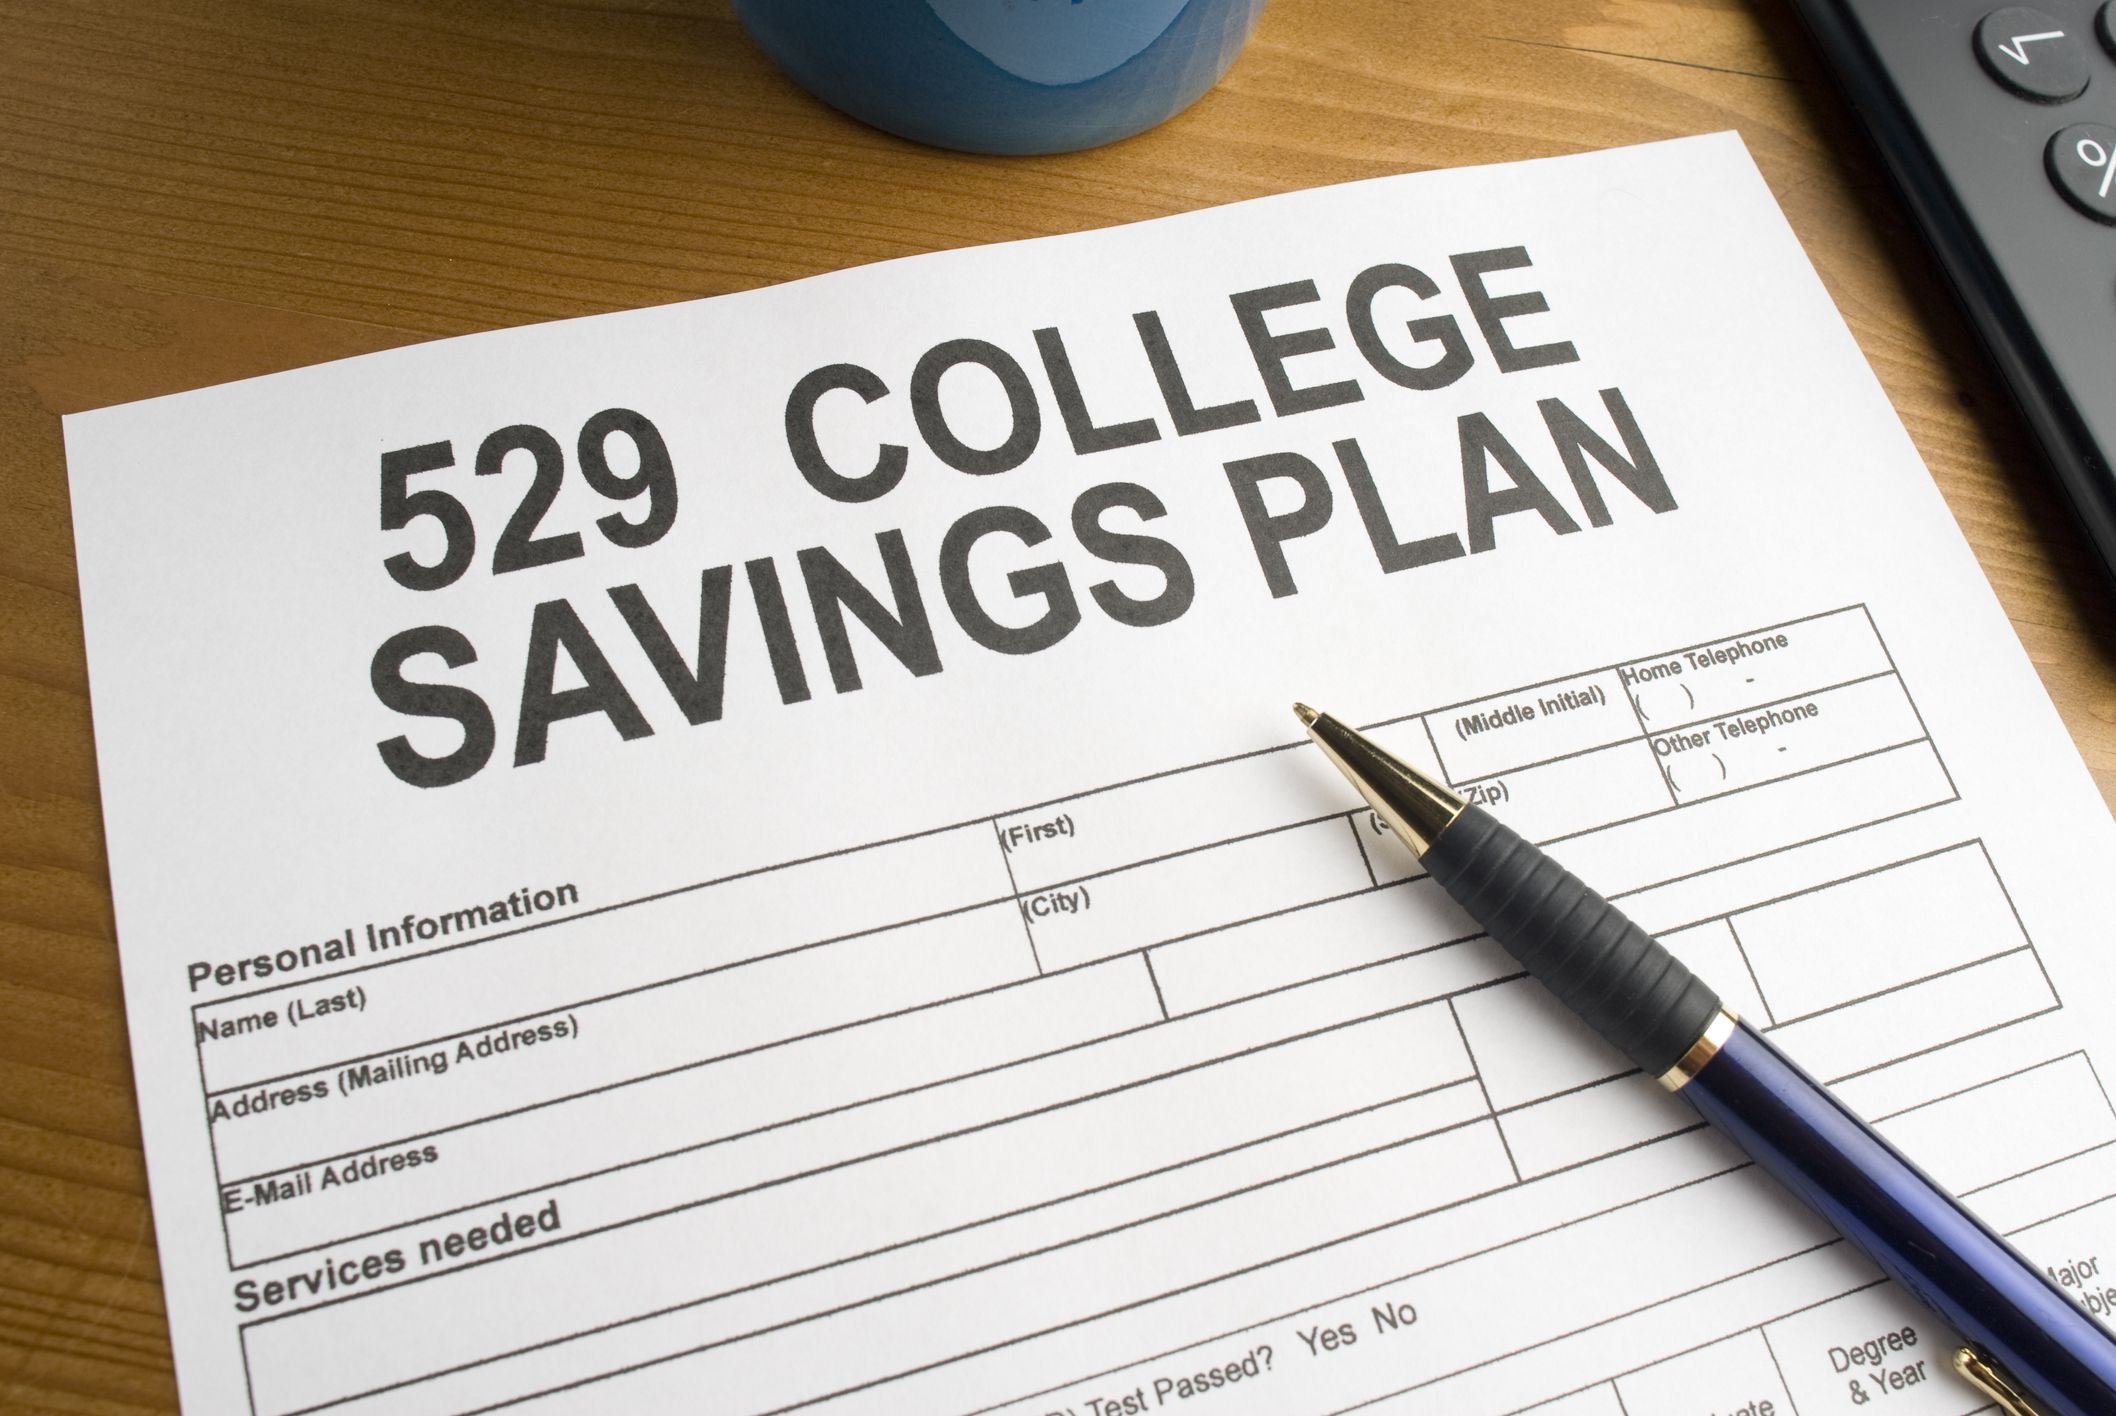 Are There Disadvantages of 529 Plans for College?